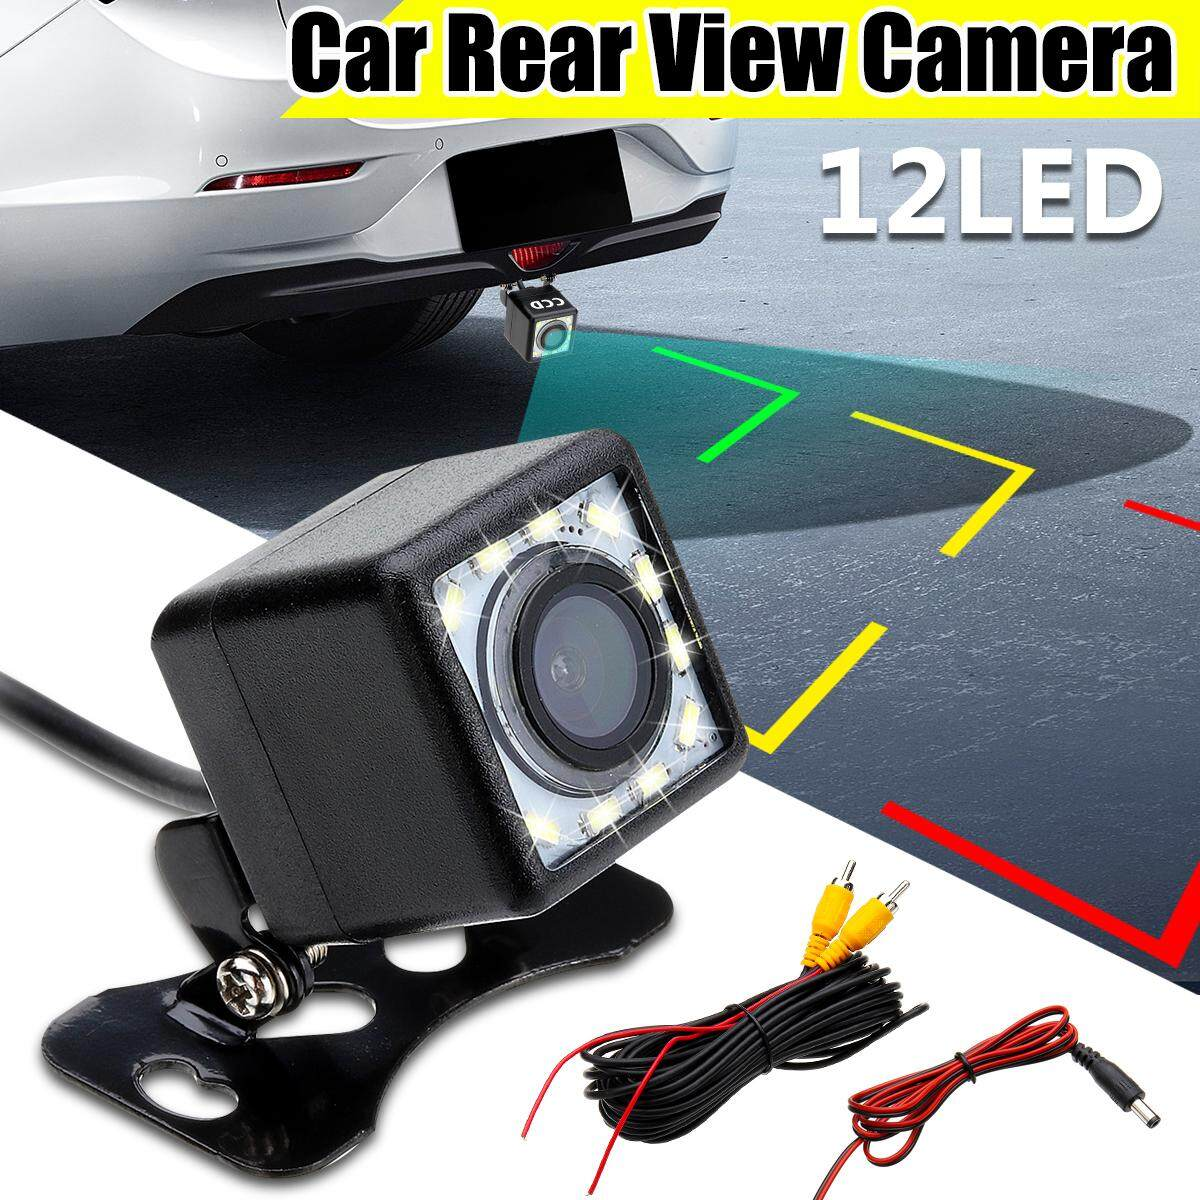 12 Led 12v Car Vehicle Rear View Camera Waterproof Night Vision 170 Wide Angle By Wings Wind.